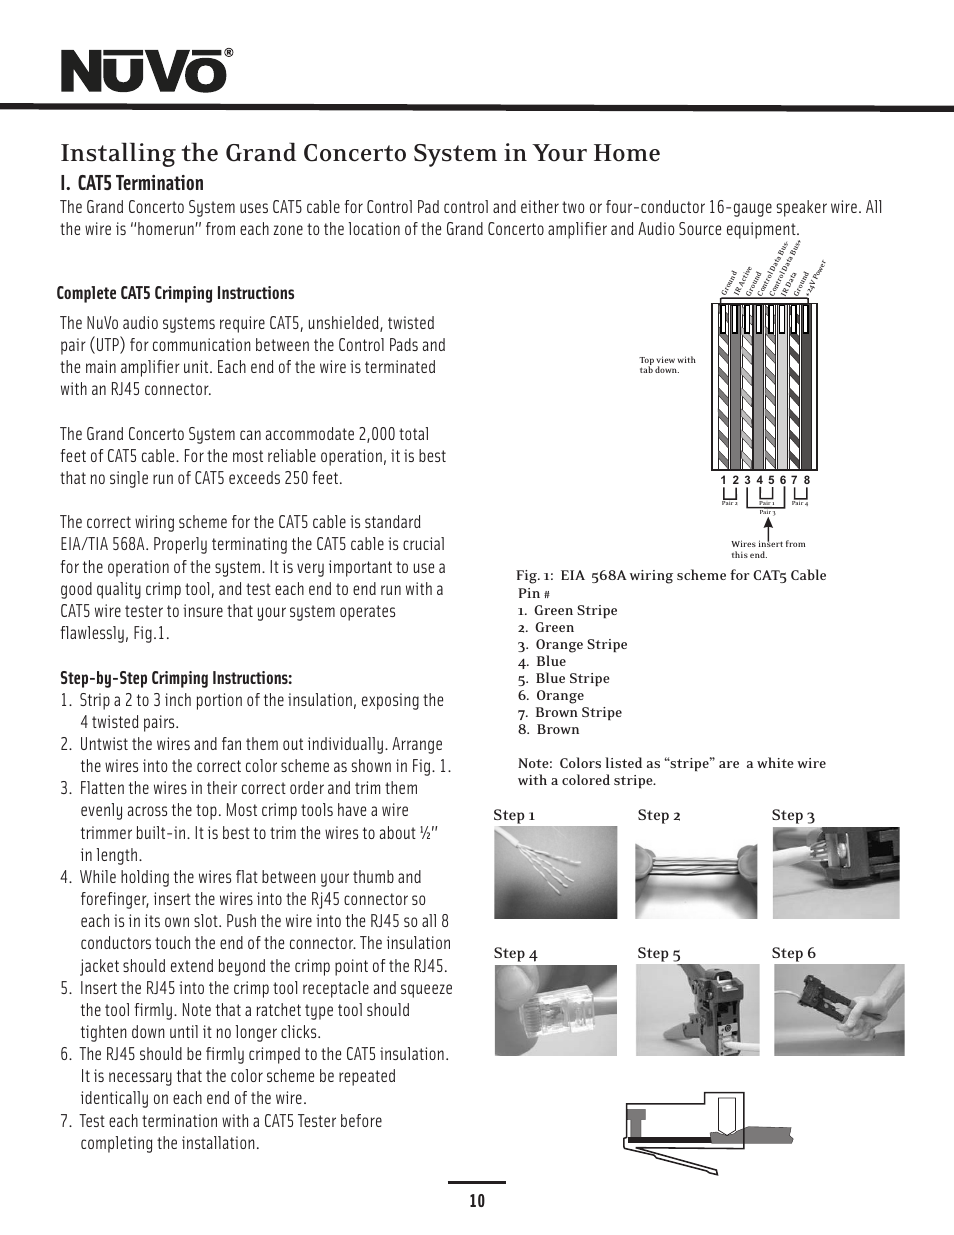 Installing The Grand Concerto System In Your Home I Cat5 How To Terminate Cable Termination Nuvo Essentia Nv E6gxs User Manual Page 14 48